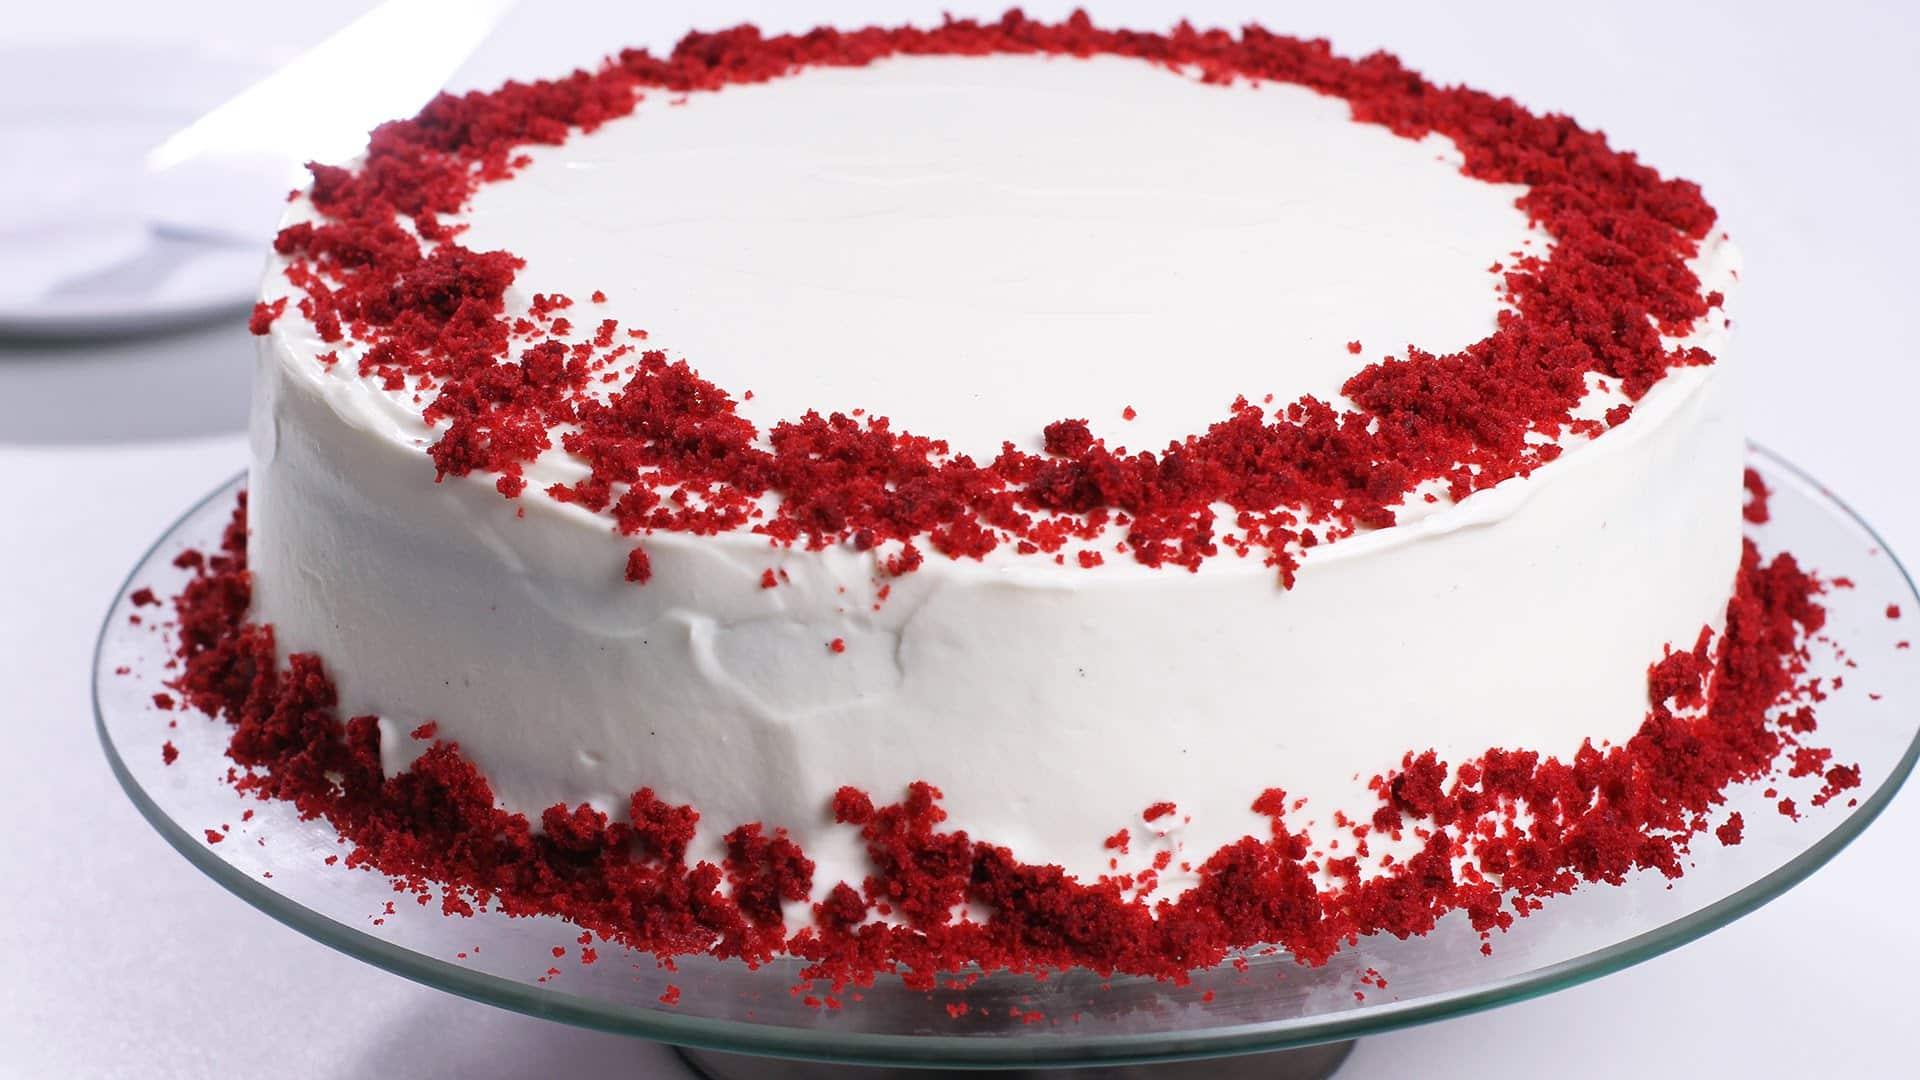 Red Velvet Ice Cream Cake For Sale